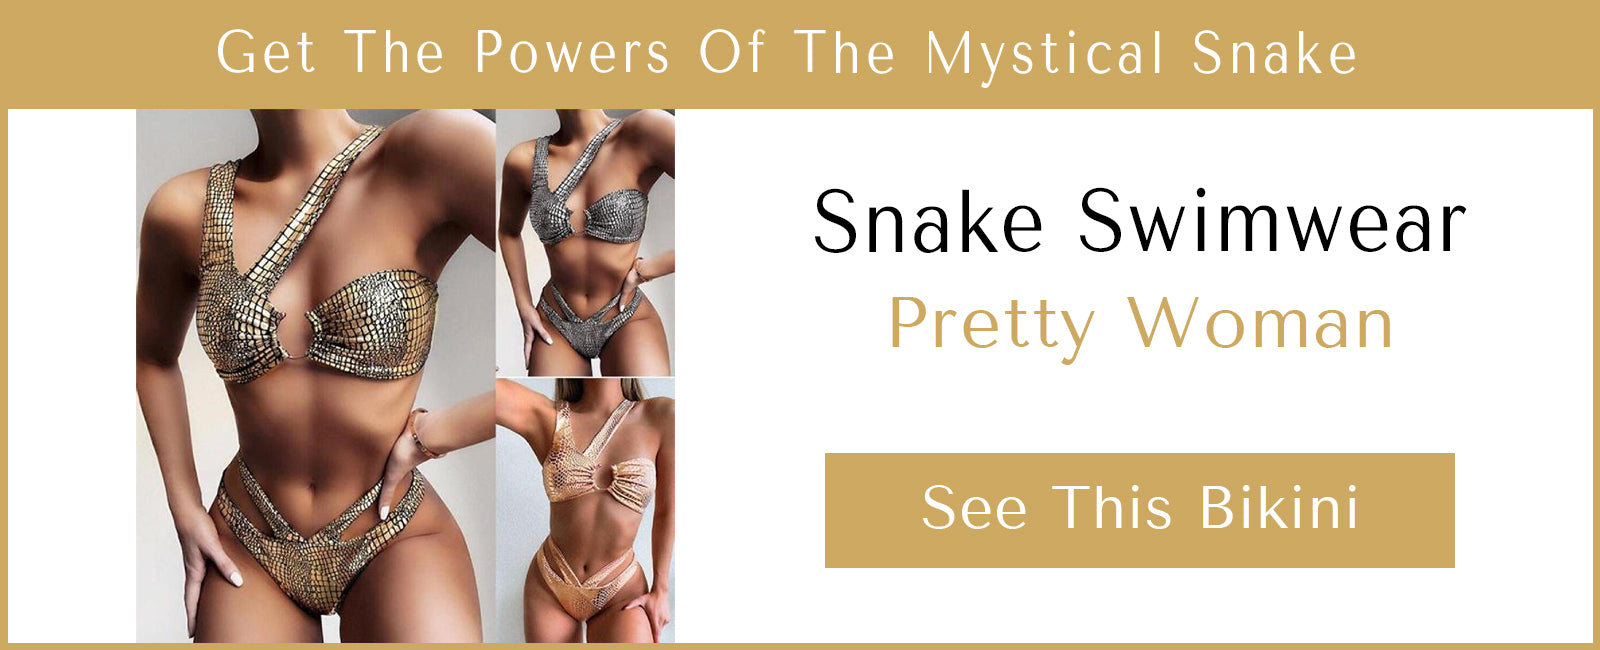 Presentation of one of our snake bikinis